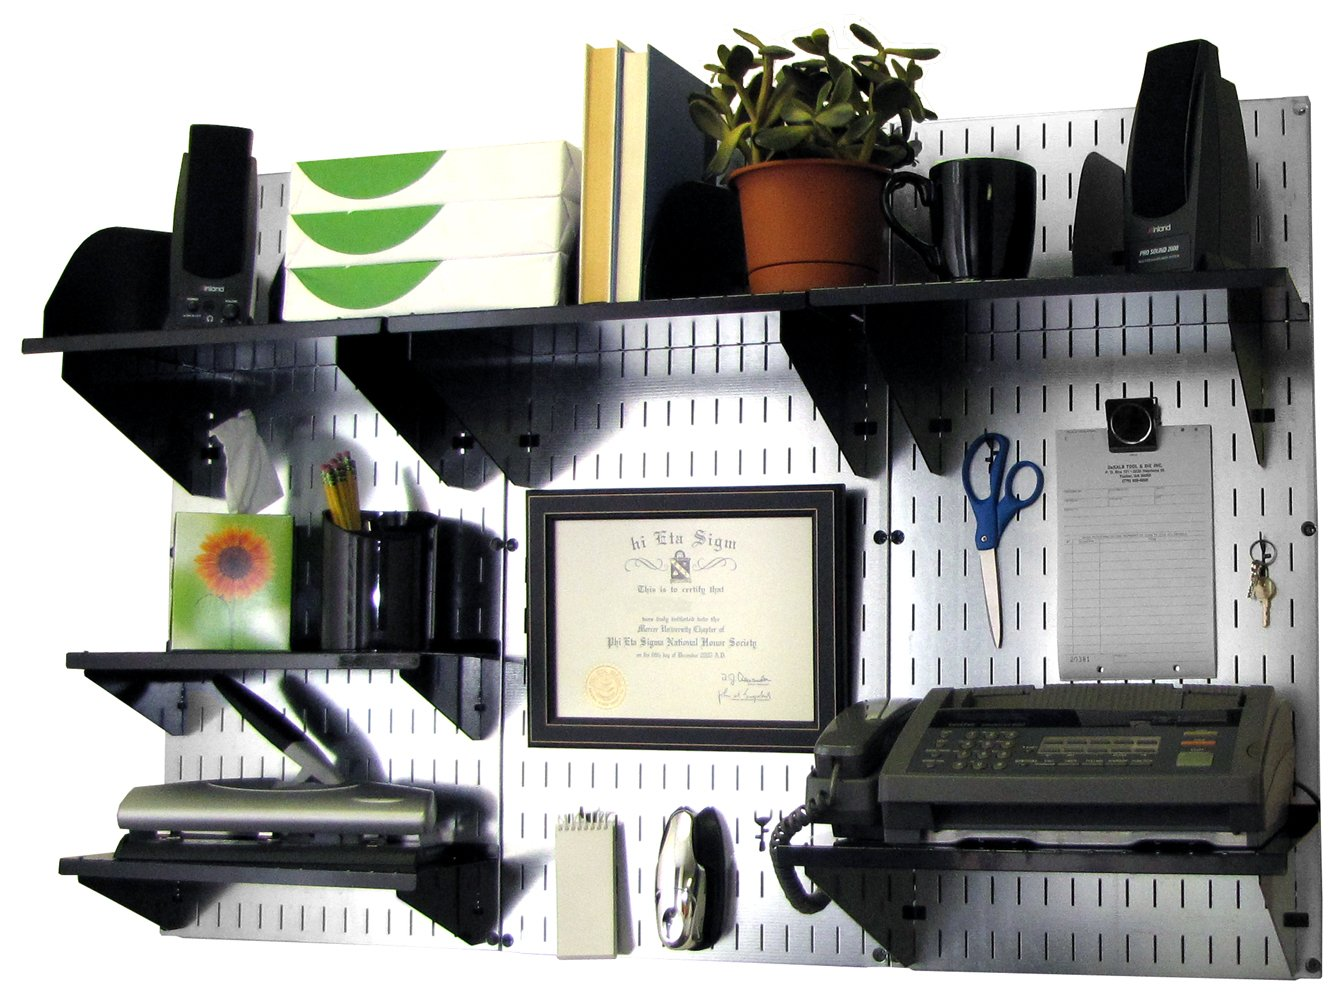 Wall Control Office Organizer Unit Wall Mounted Desk Storage and Black Accessories (10-OFC-300 GVB)